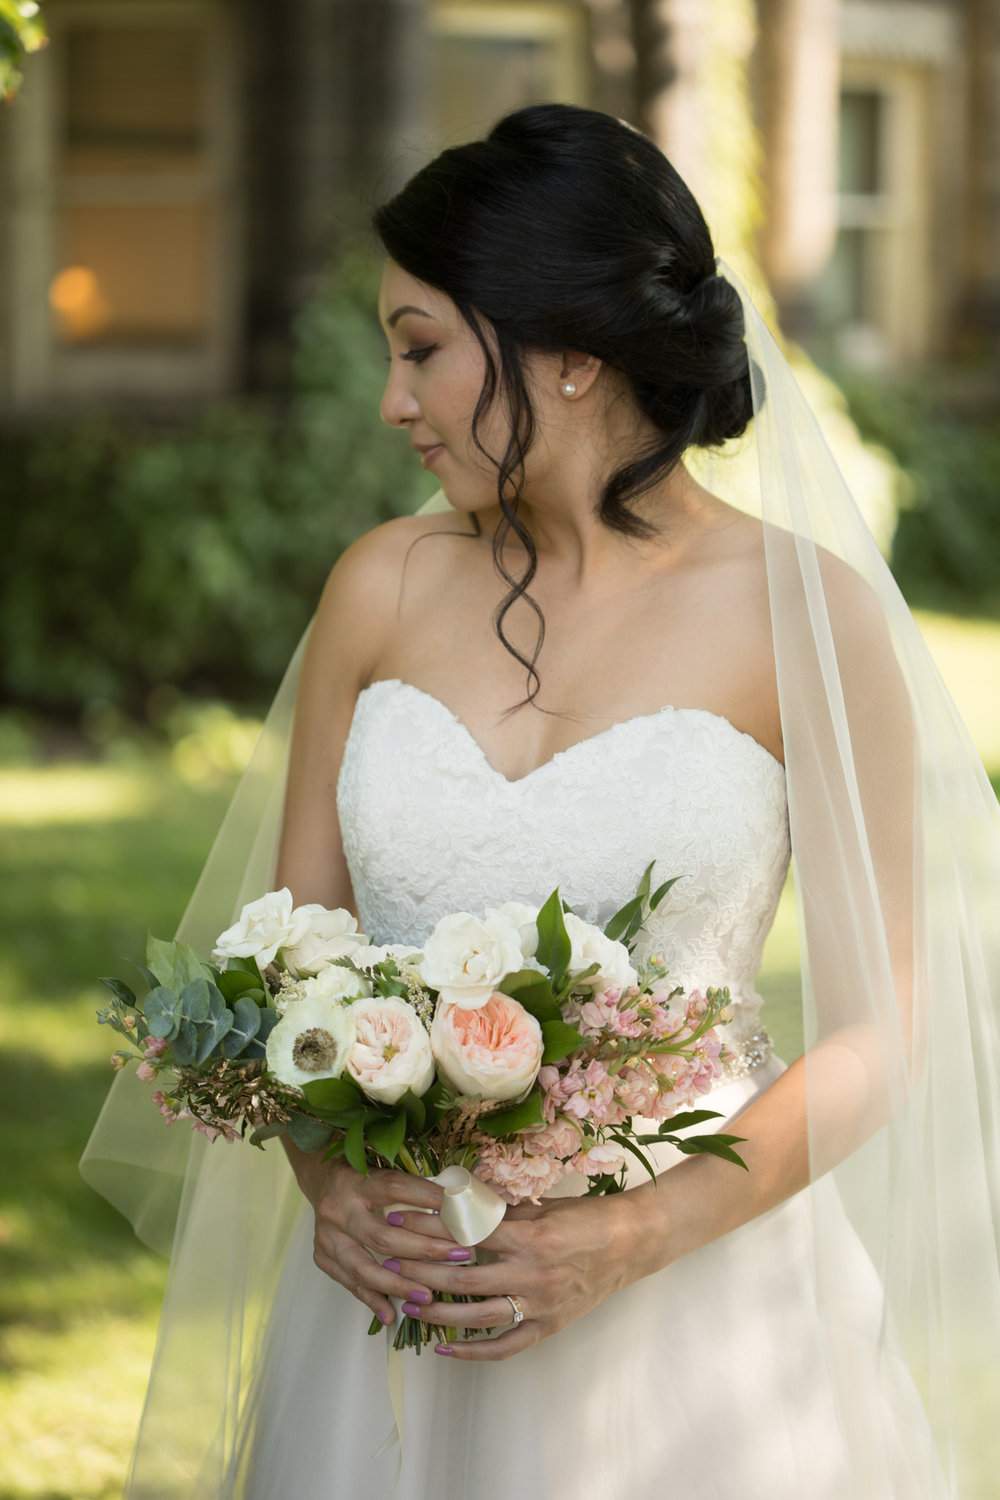 Ryan made us feel so comfortable. He was able to capture our special day in a variety of difficult circumstances including POURING rain - the photos turned out beautifully!